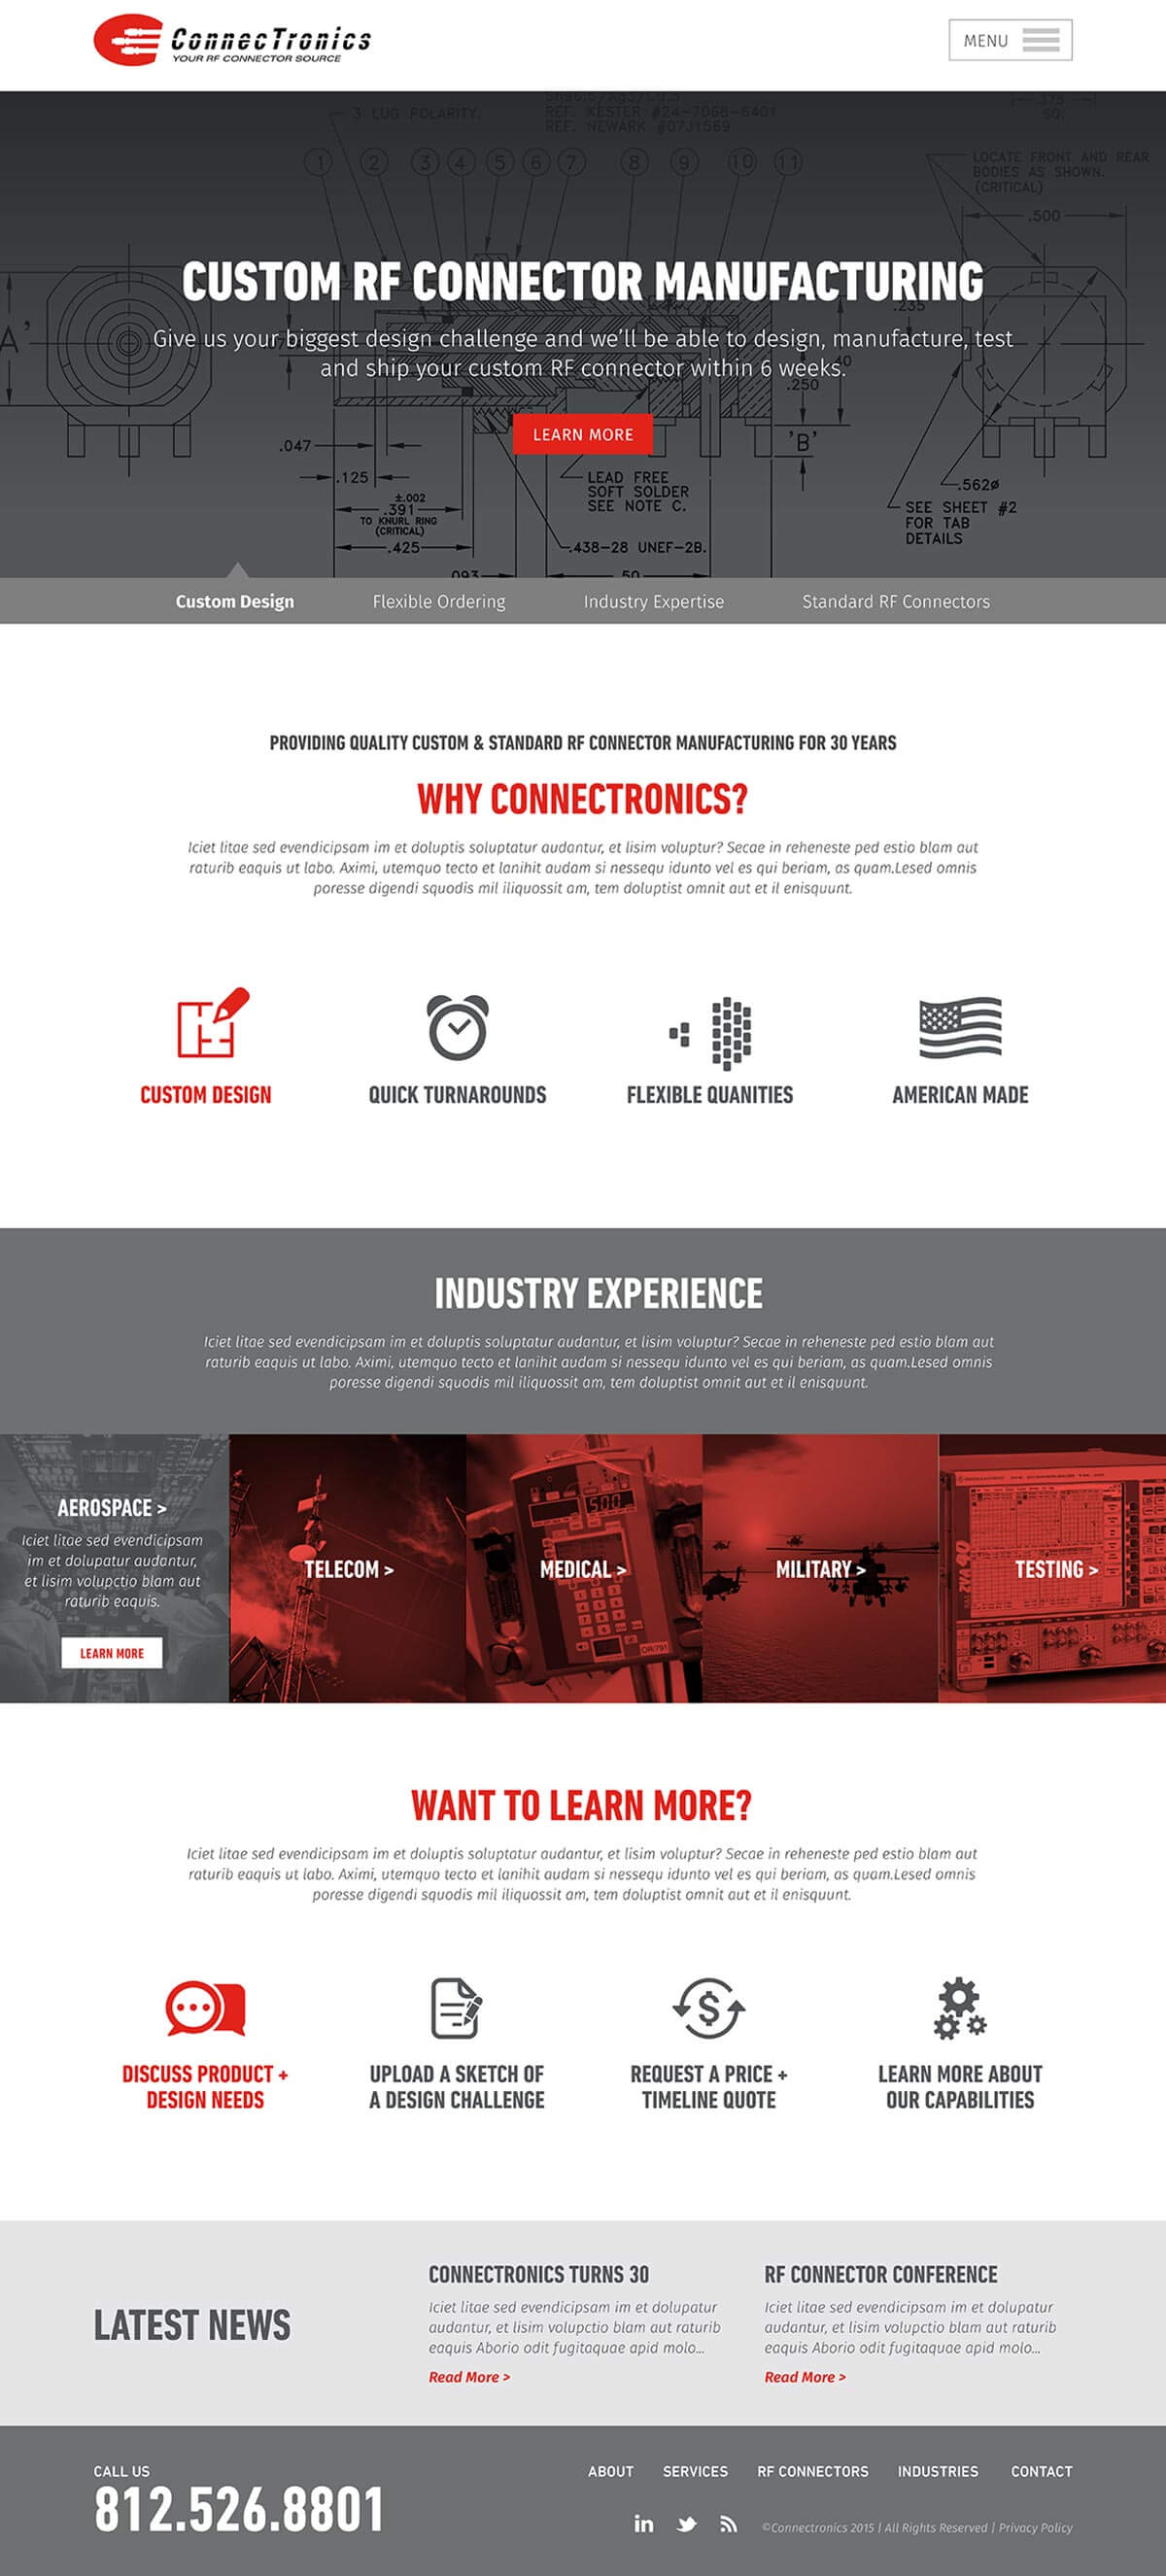 Connectronics website homepage